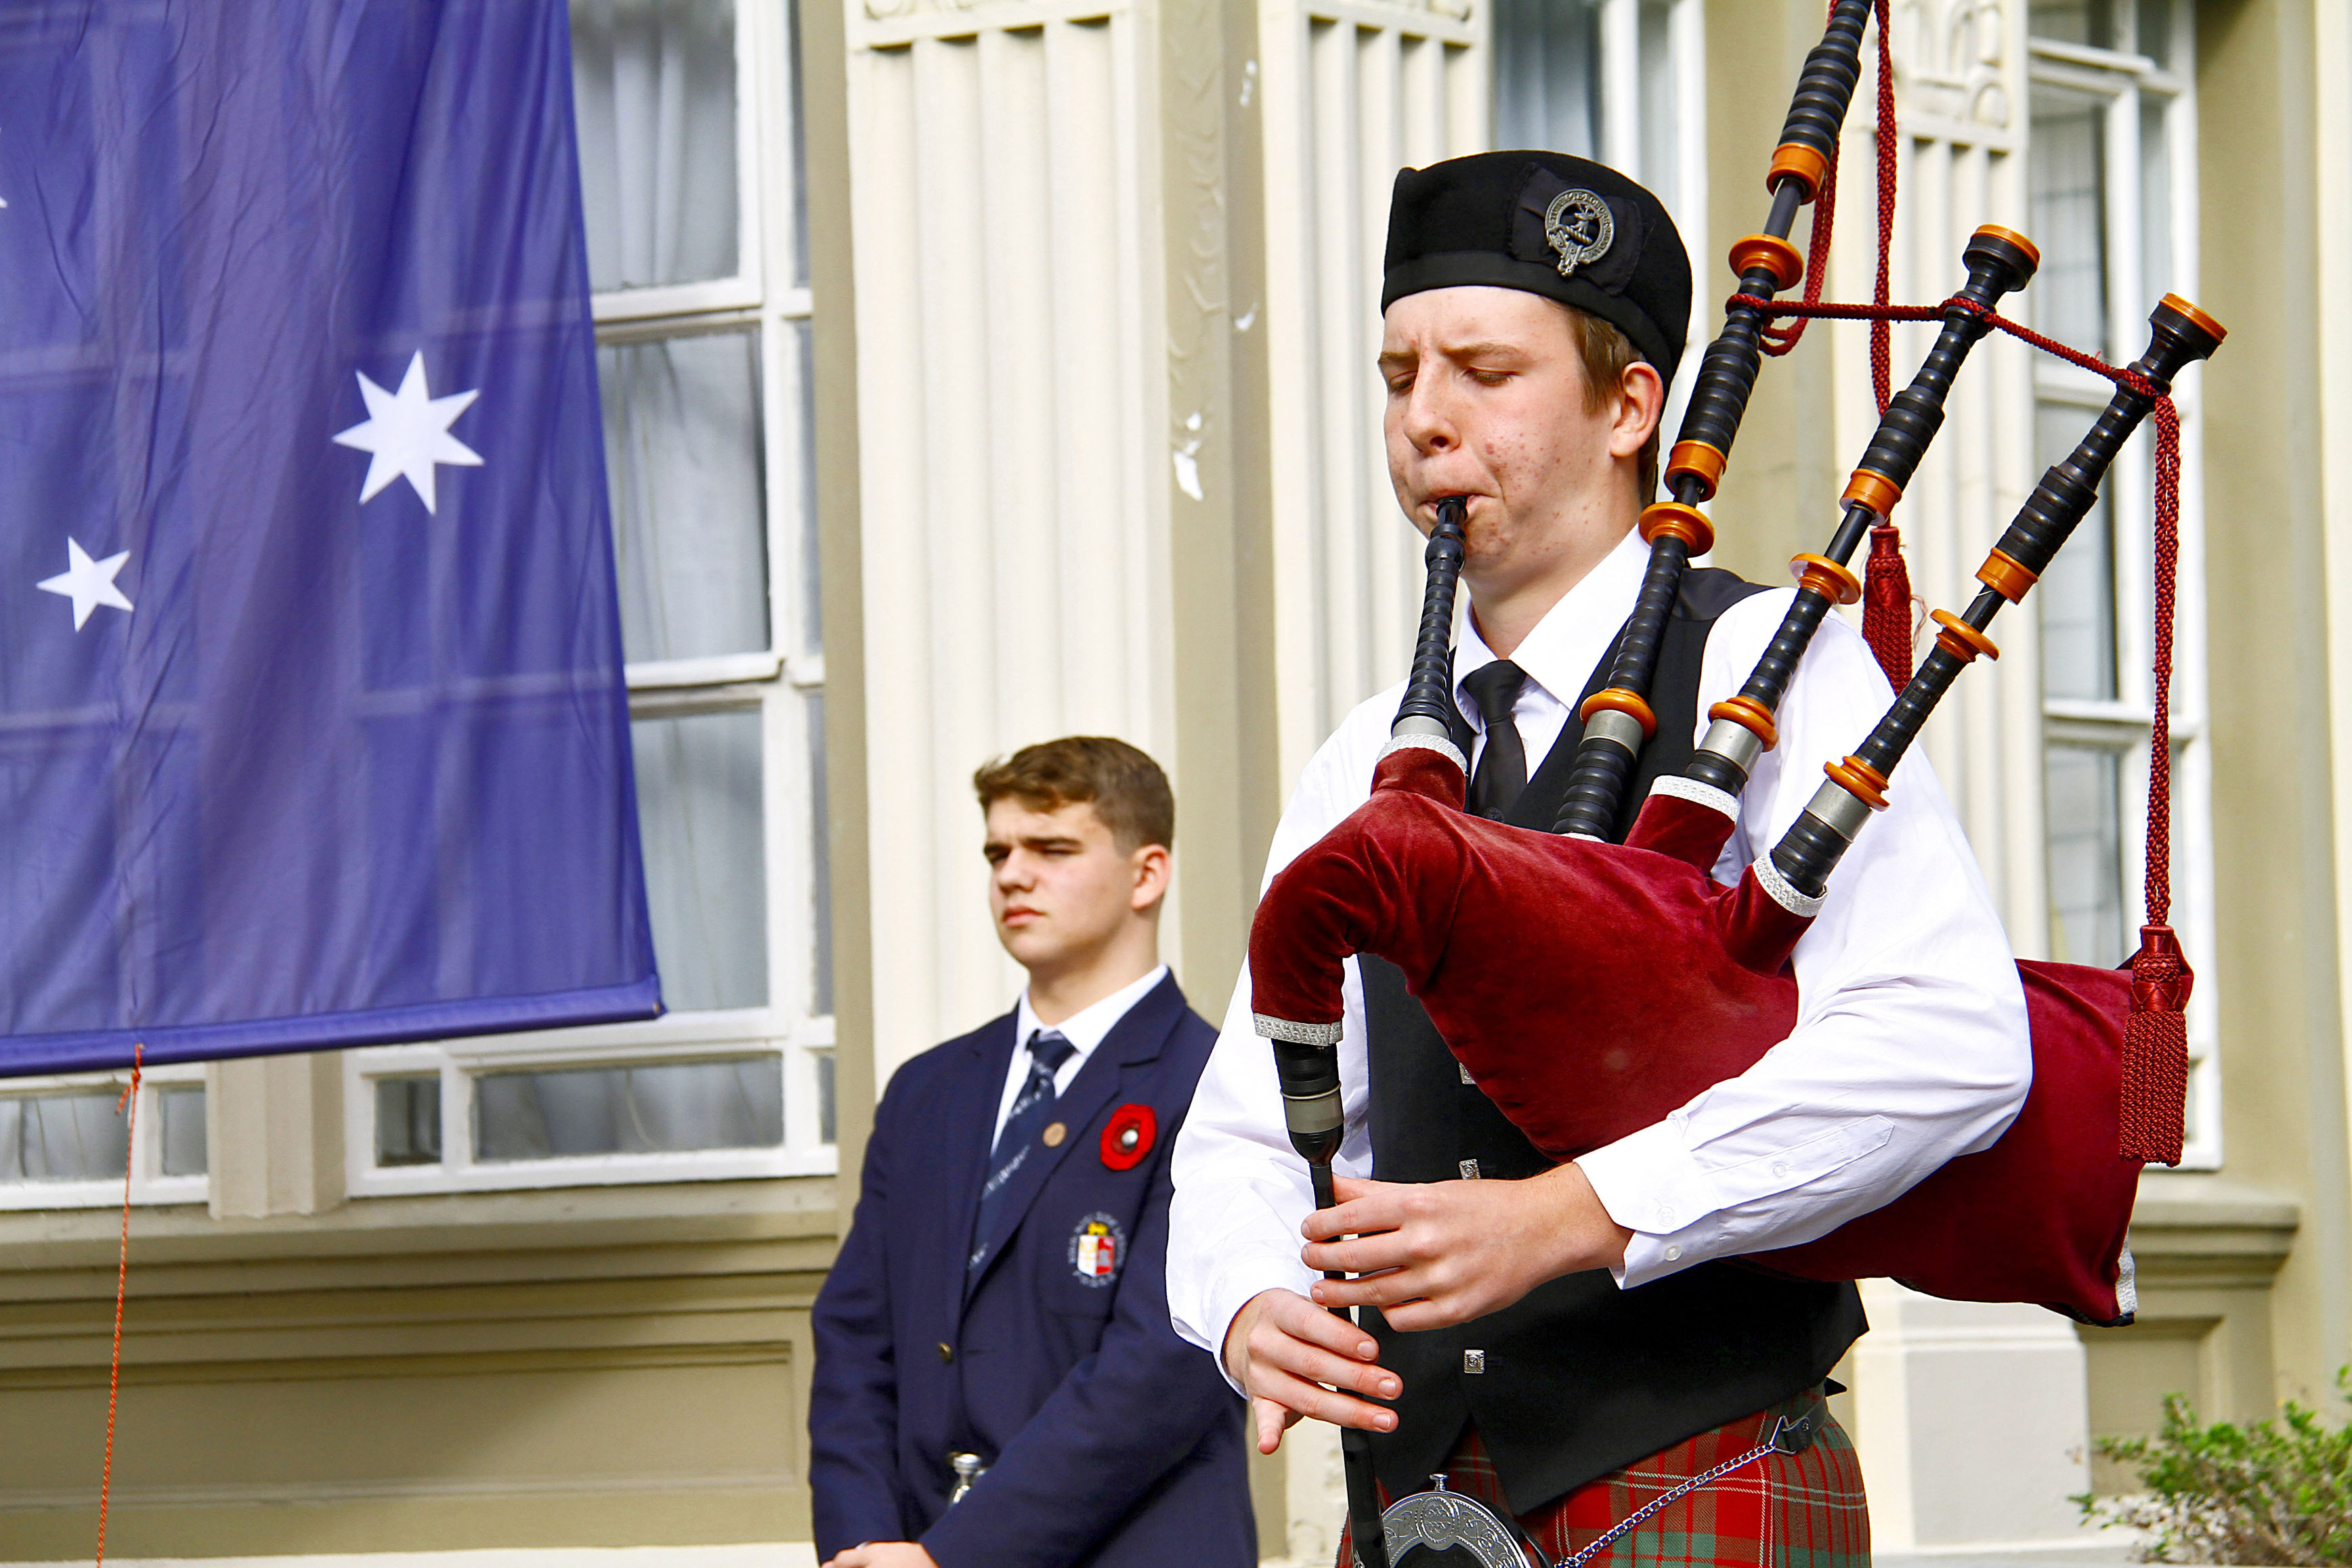 PNBHS 2019 School ANZAC Service